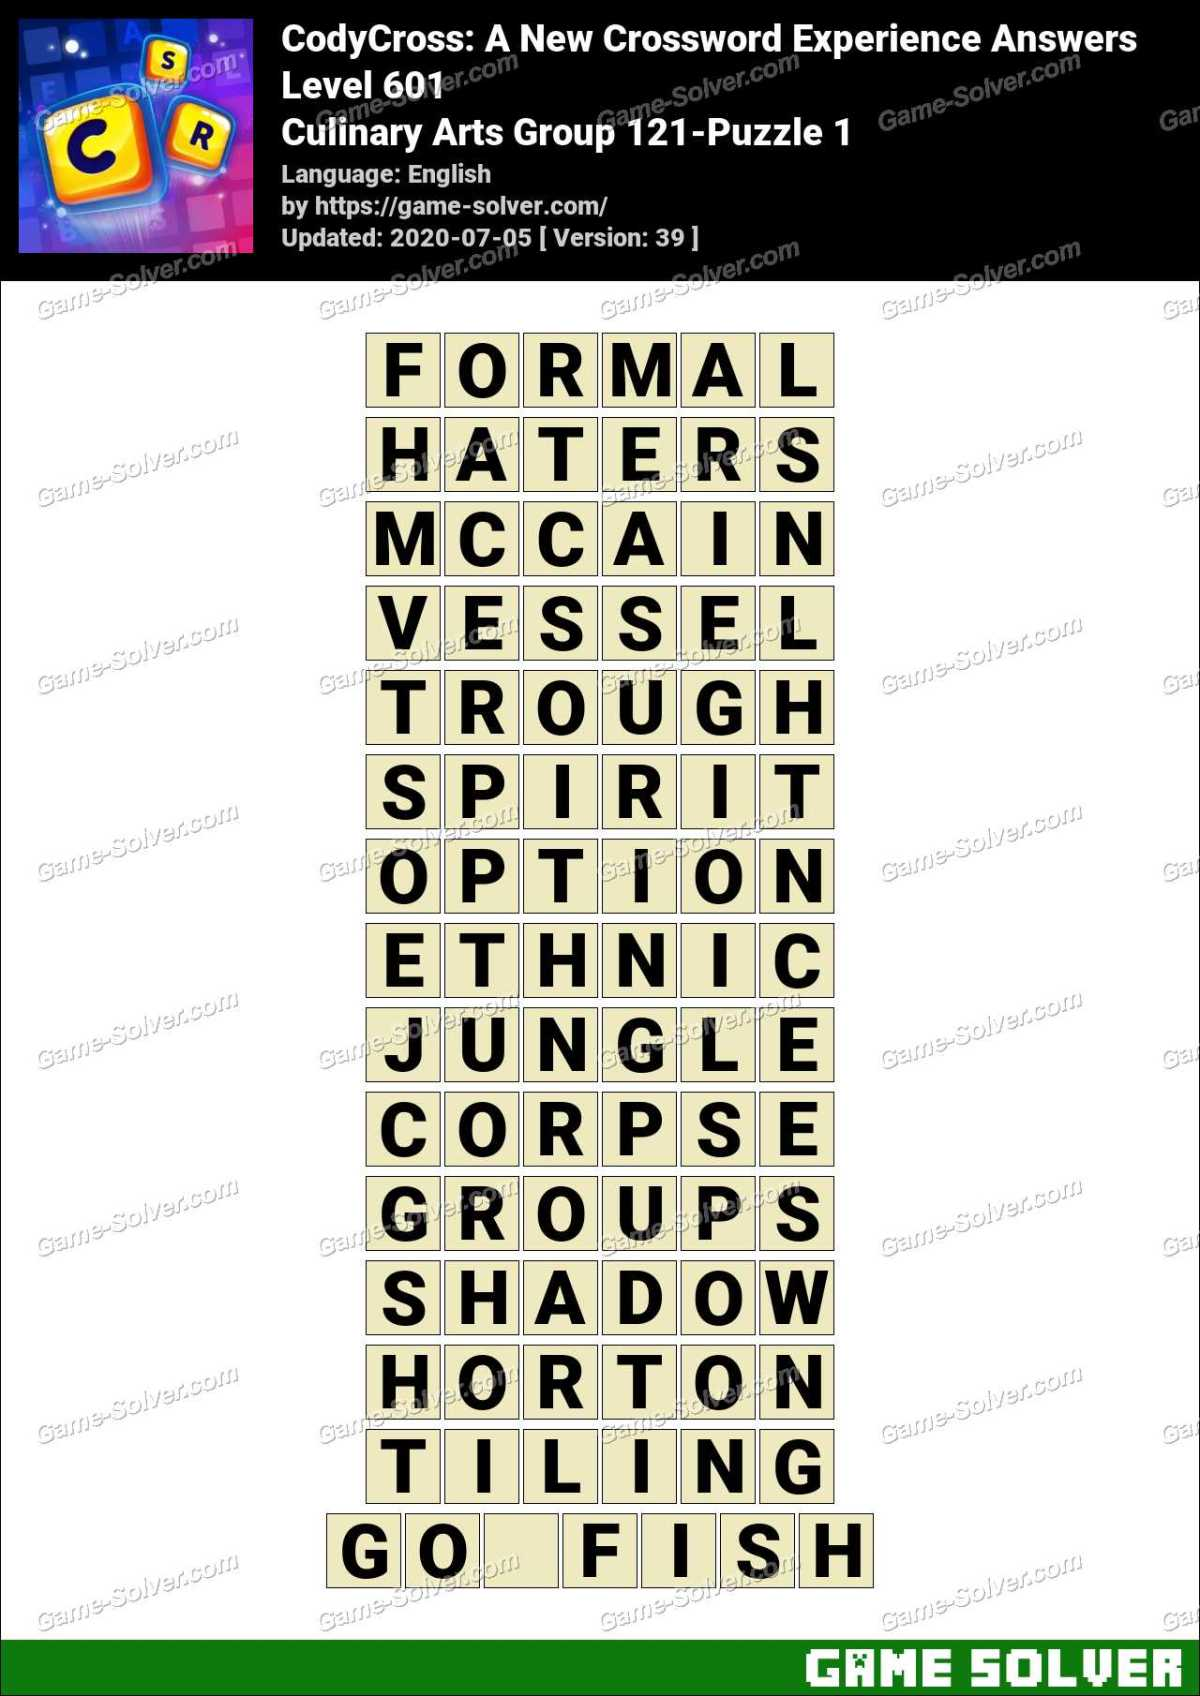 CodyCross Culinary Arts Group 121-Puzzle 1 Answers